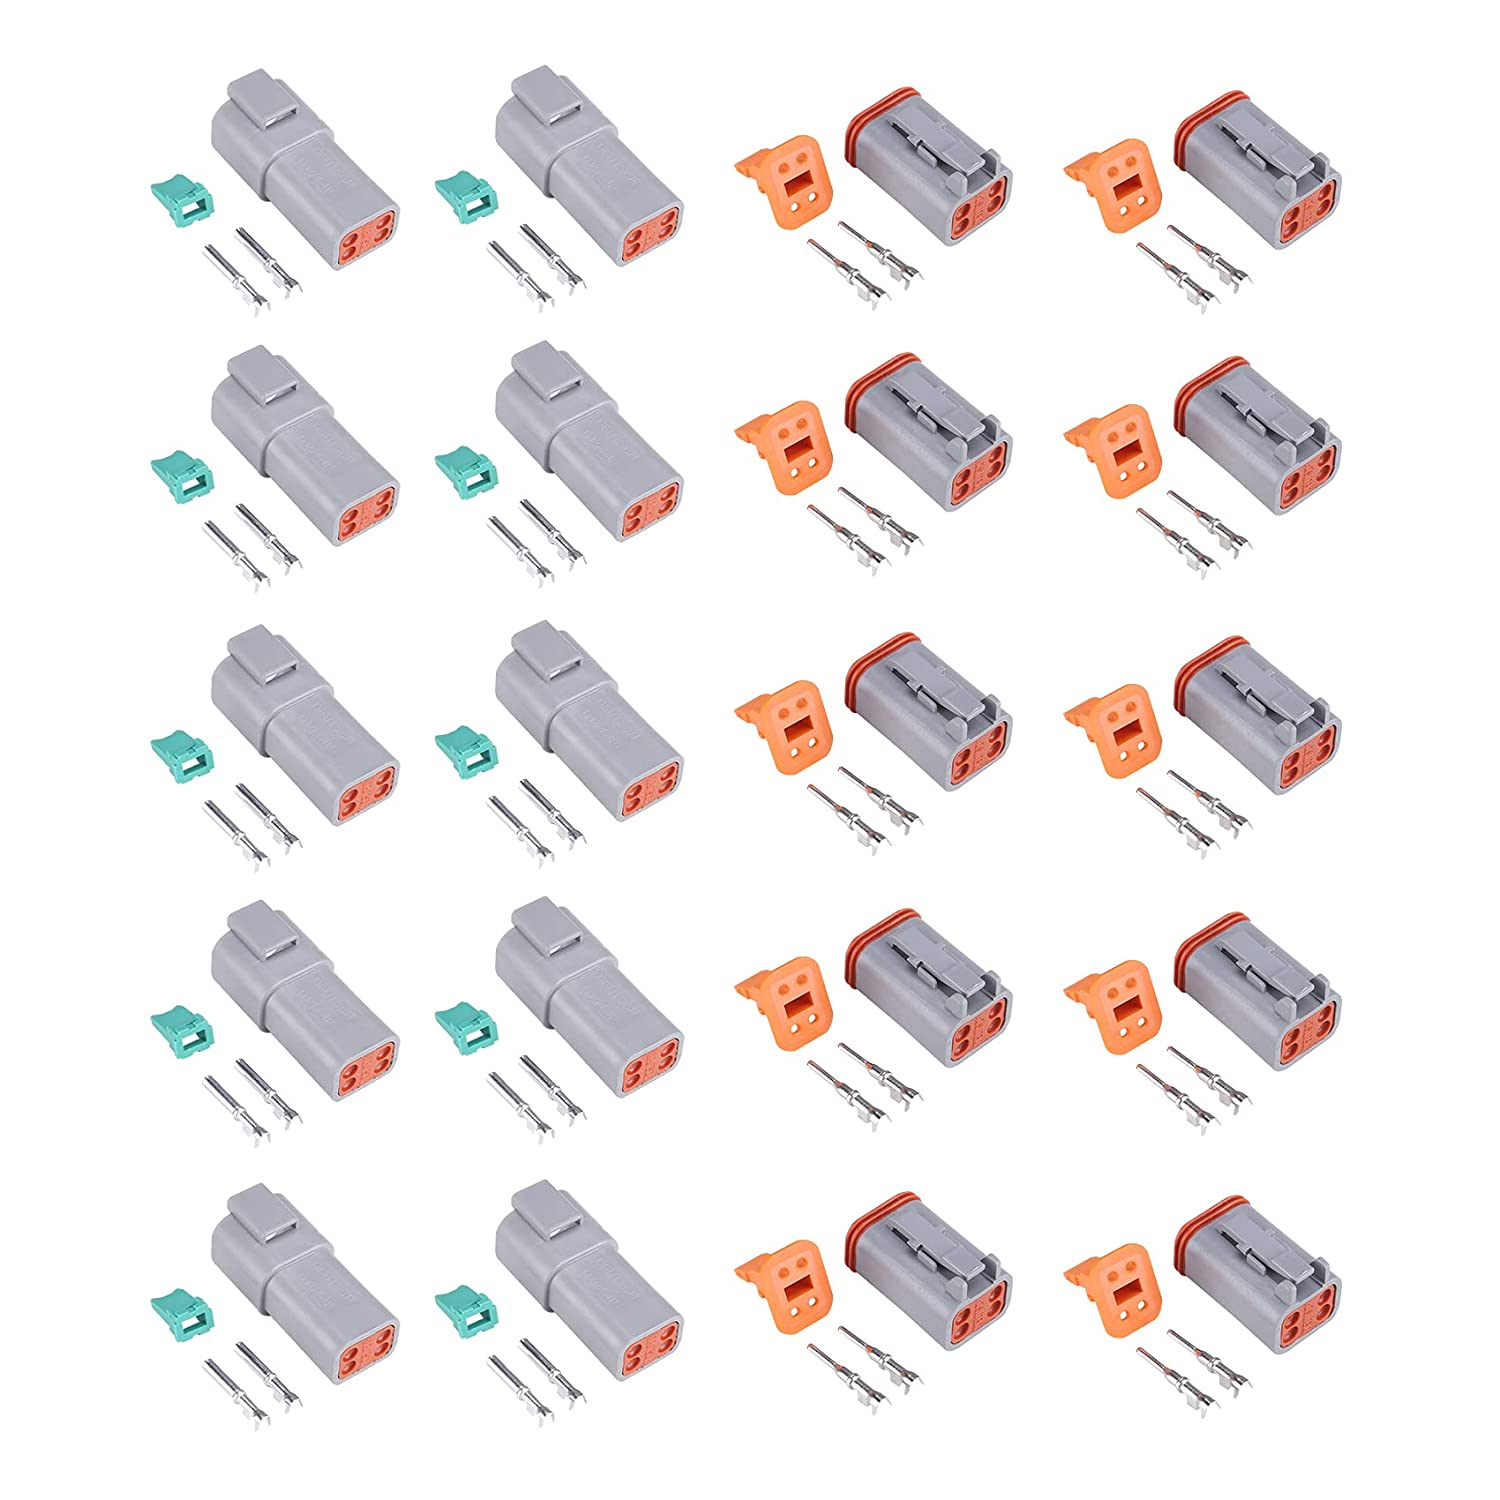 MUYI 10 Kit 4 Pin Way DT Receptacle Series Connector W Gray New Orleans Mall shopping IP67